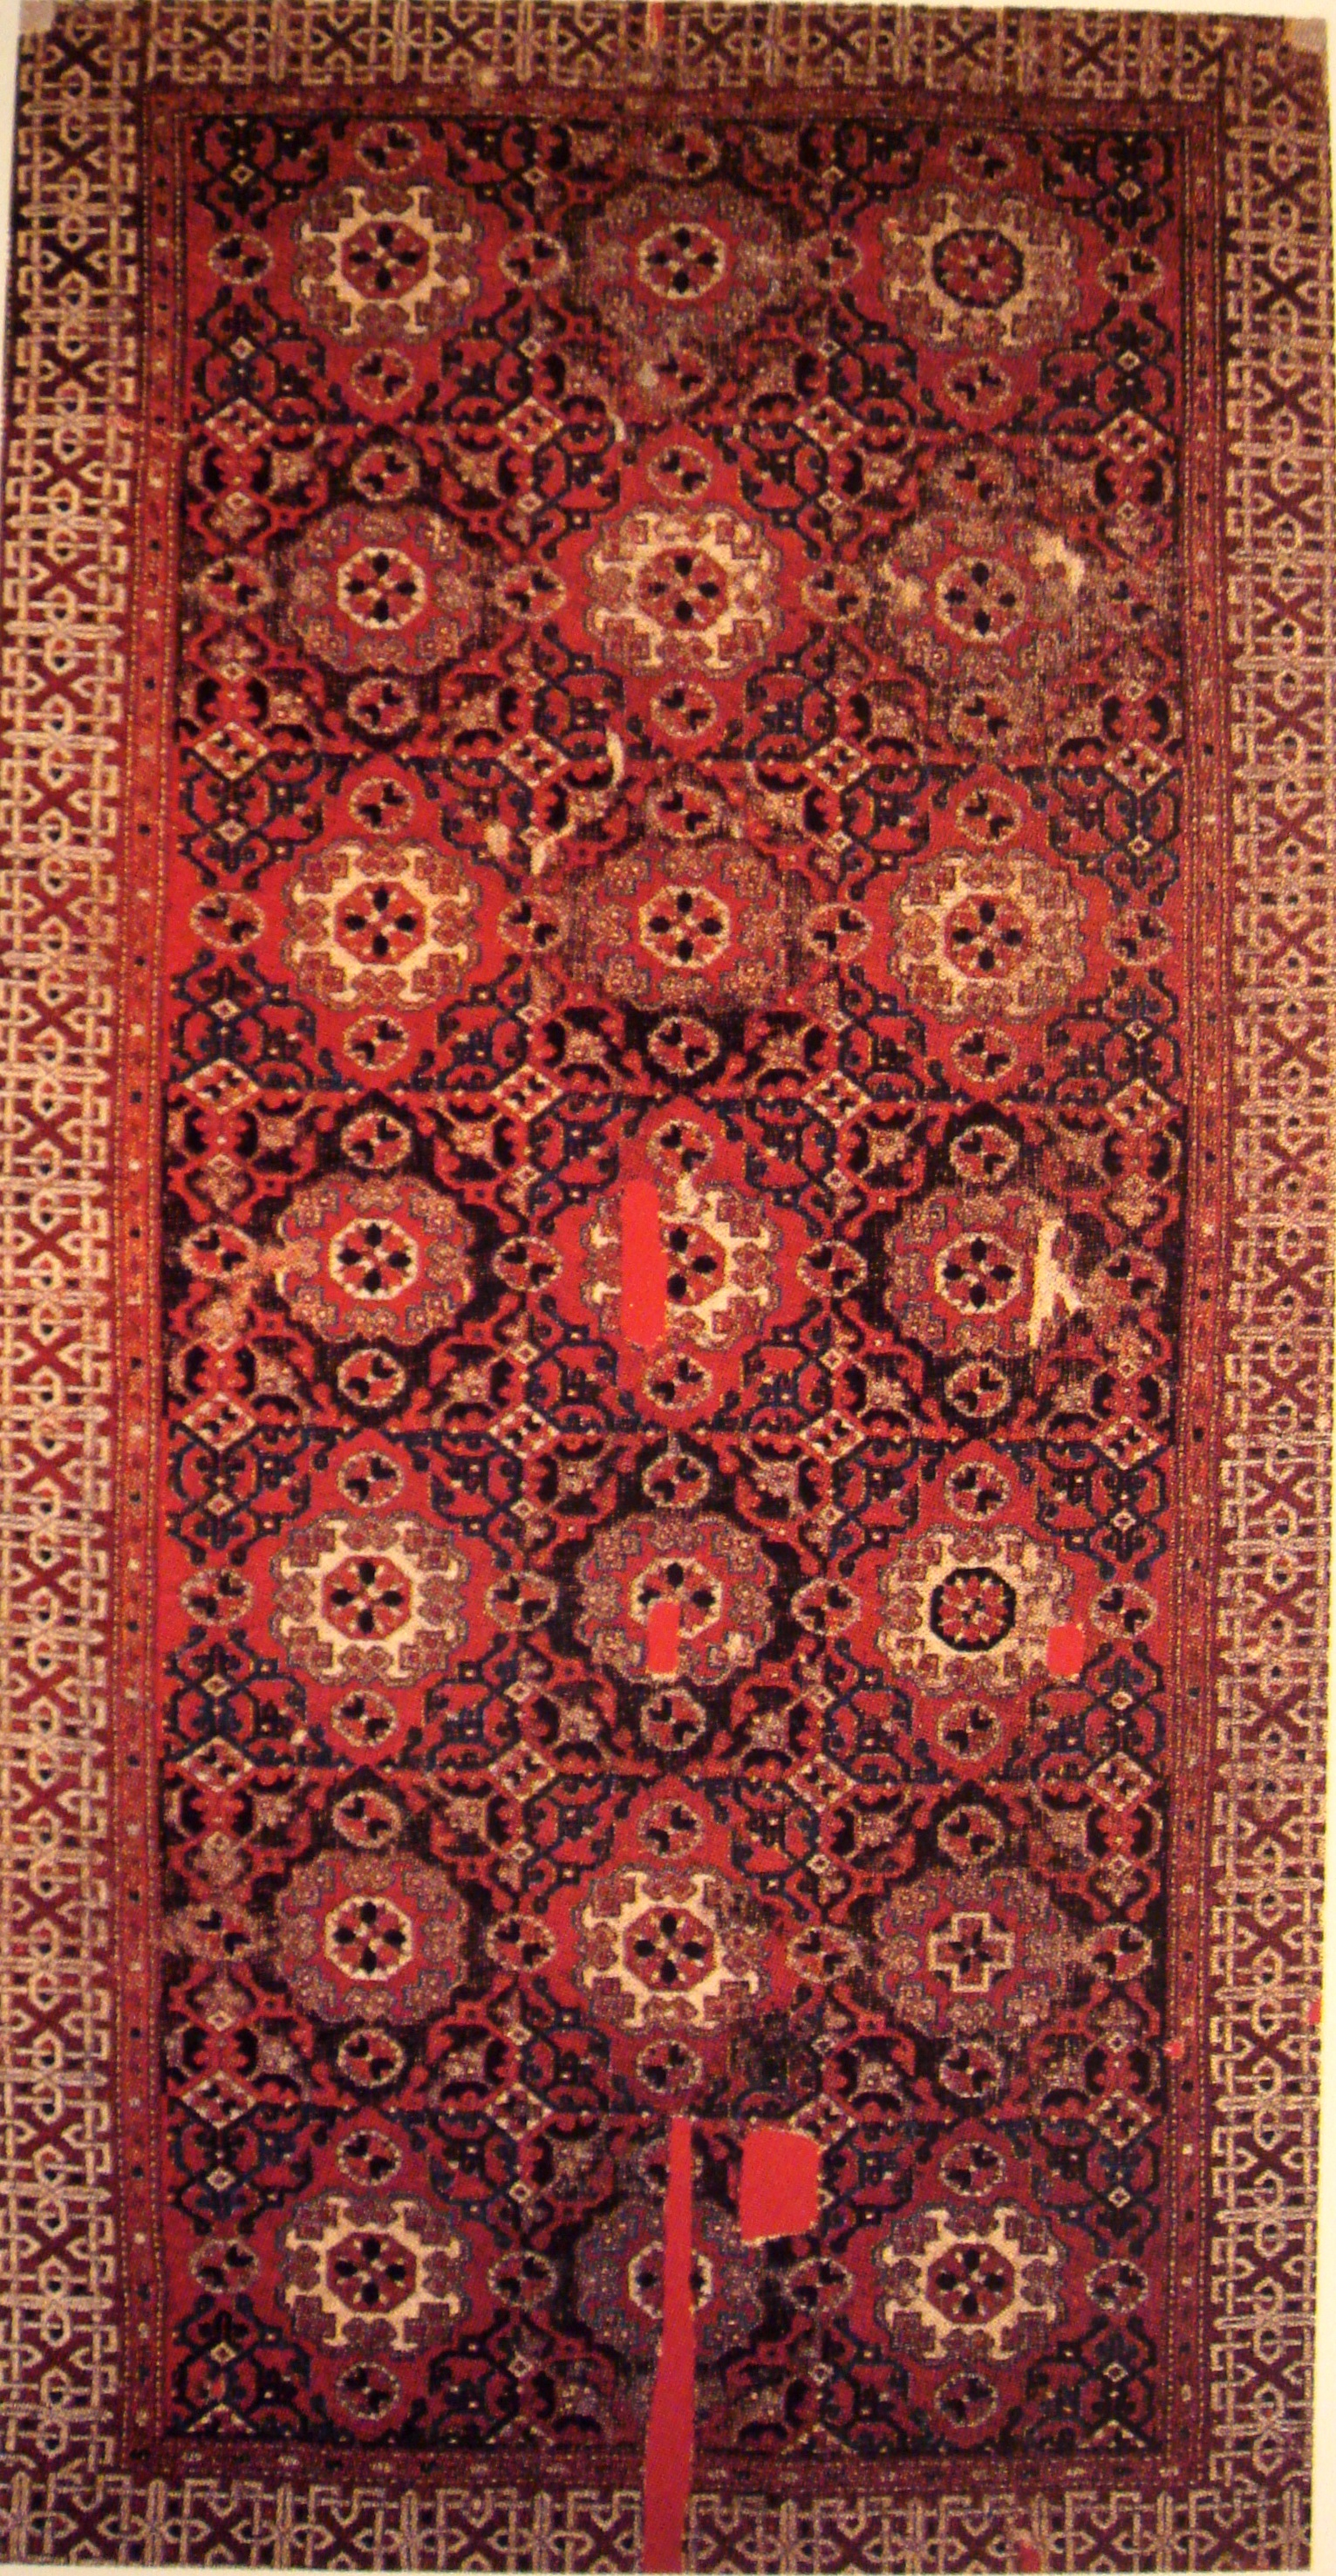 Orientalische Teppiche Wikipedia Datei Small Pattern Holbein Carpet Anatolia 16th Century